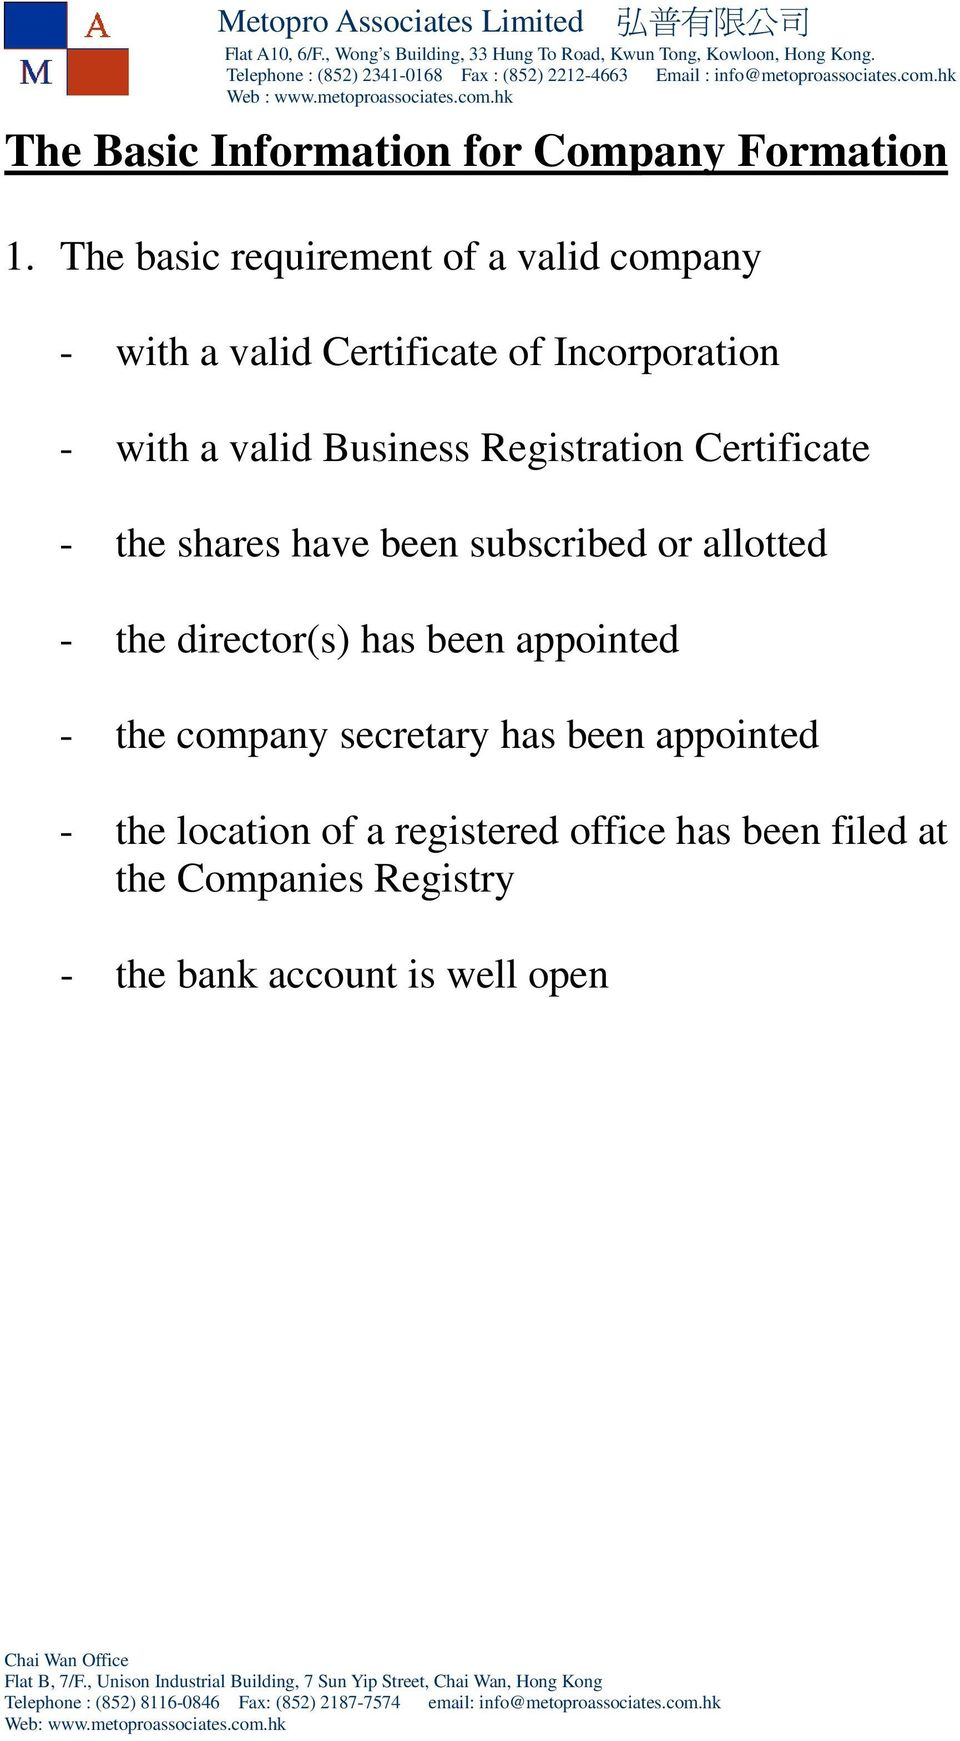 Business Registration Certificate - the shares have been subscribed or allotted - the director(s) has